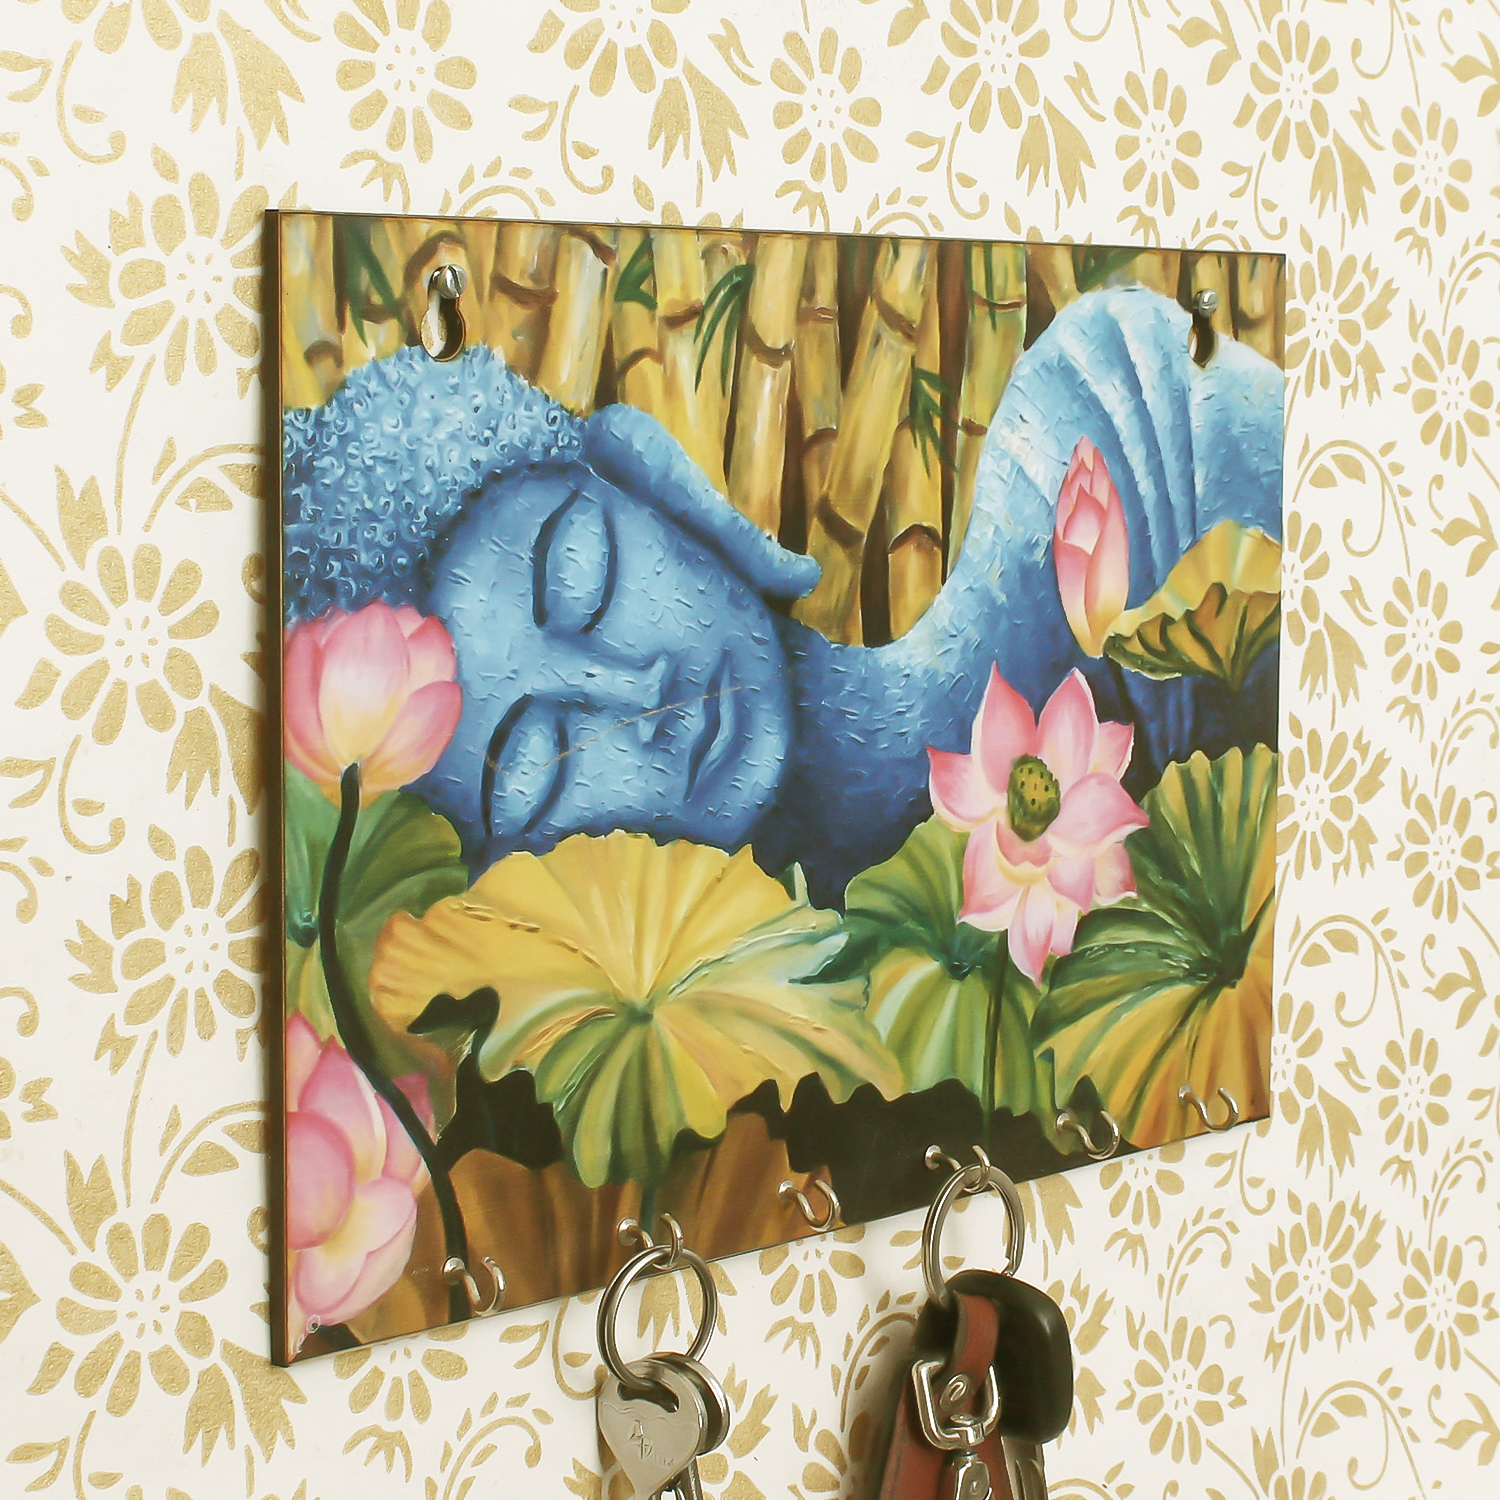 Lord Buddha Theme Wooden Key Holder with 6 Hooks Indian Home Decor